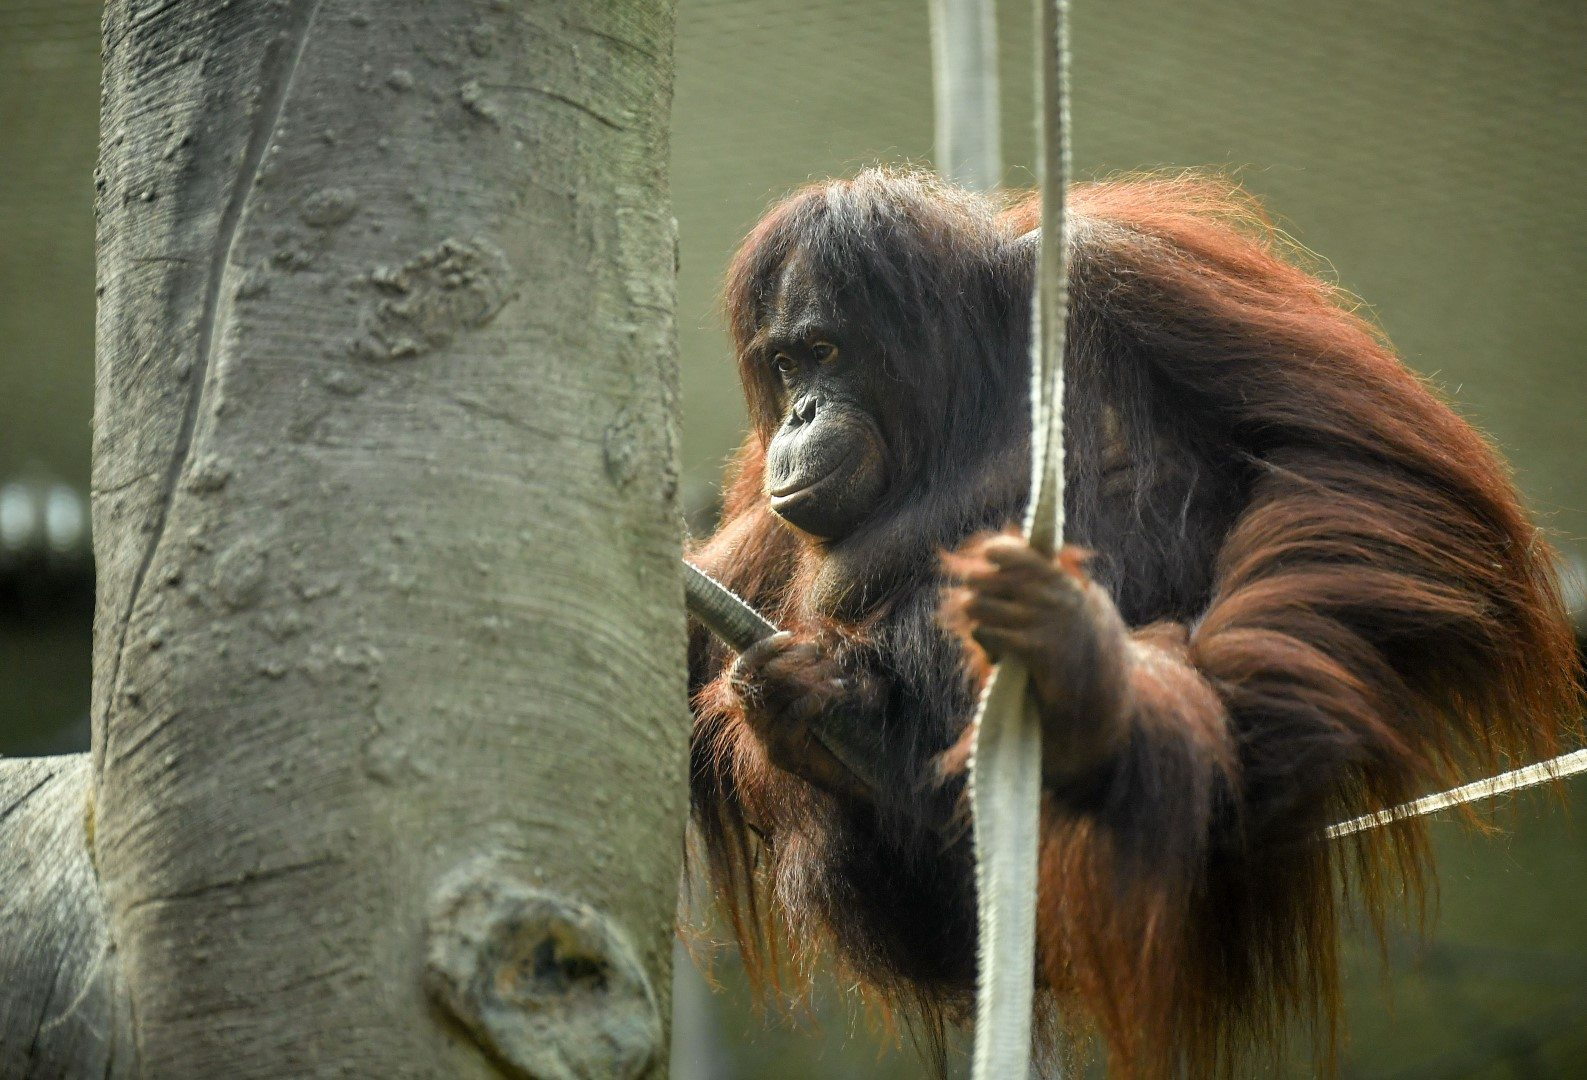 Bornean orangutan at Chester Zoo